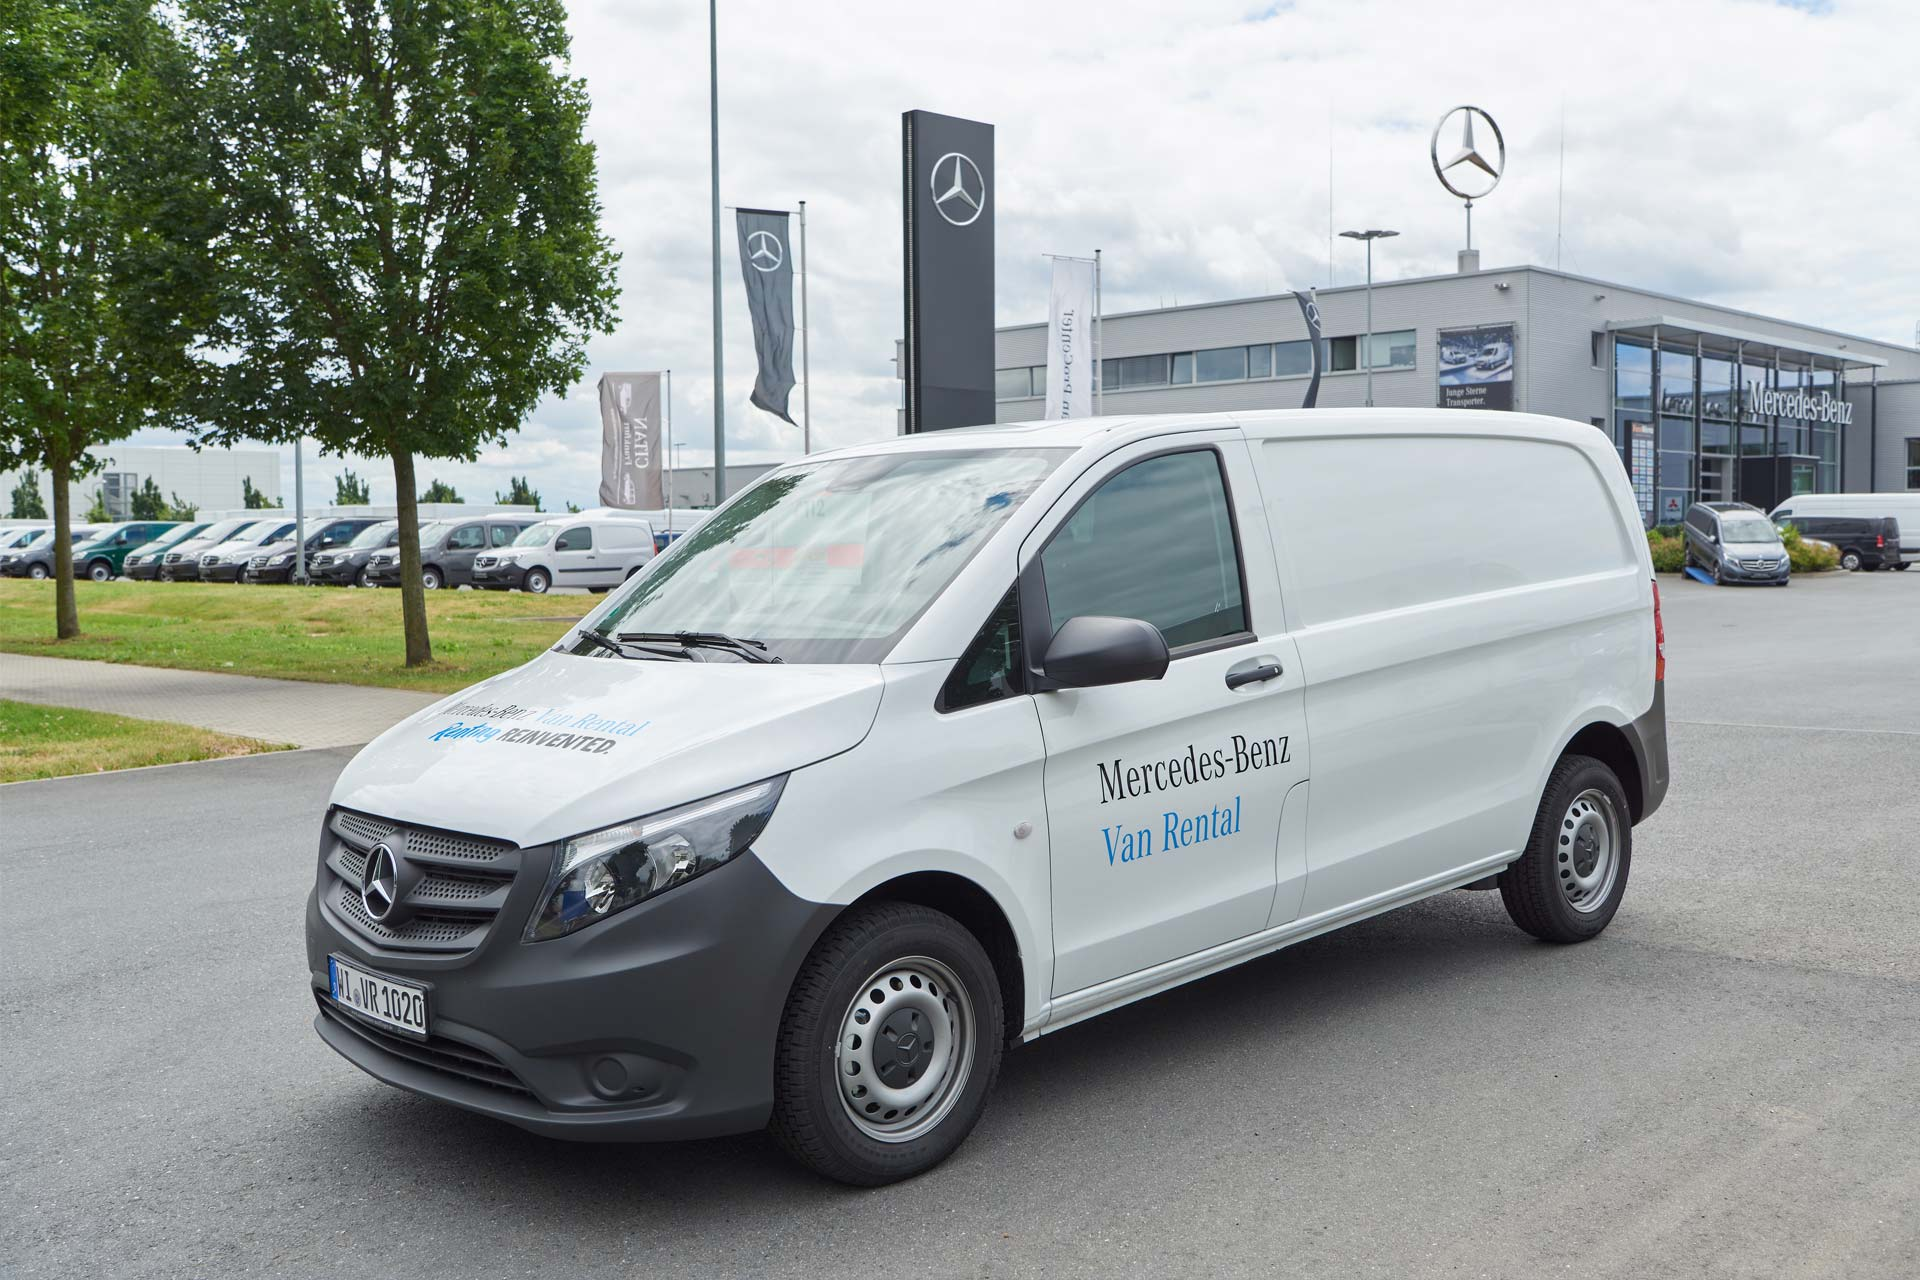 Mercedes benz launches van rental service in germany for Mercedes benz work vans